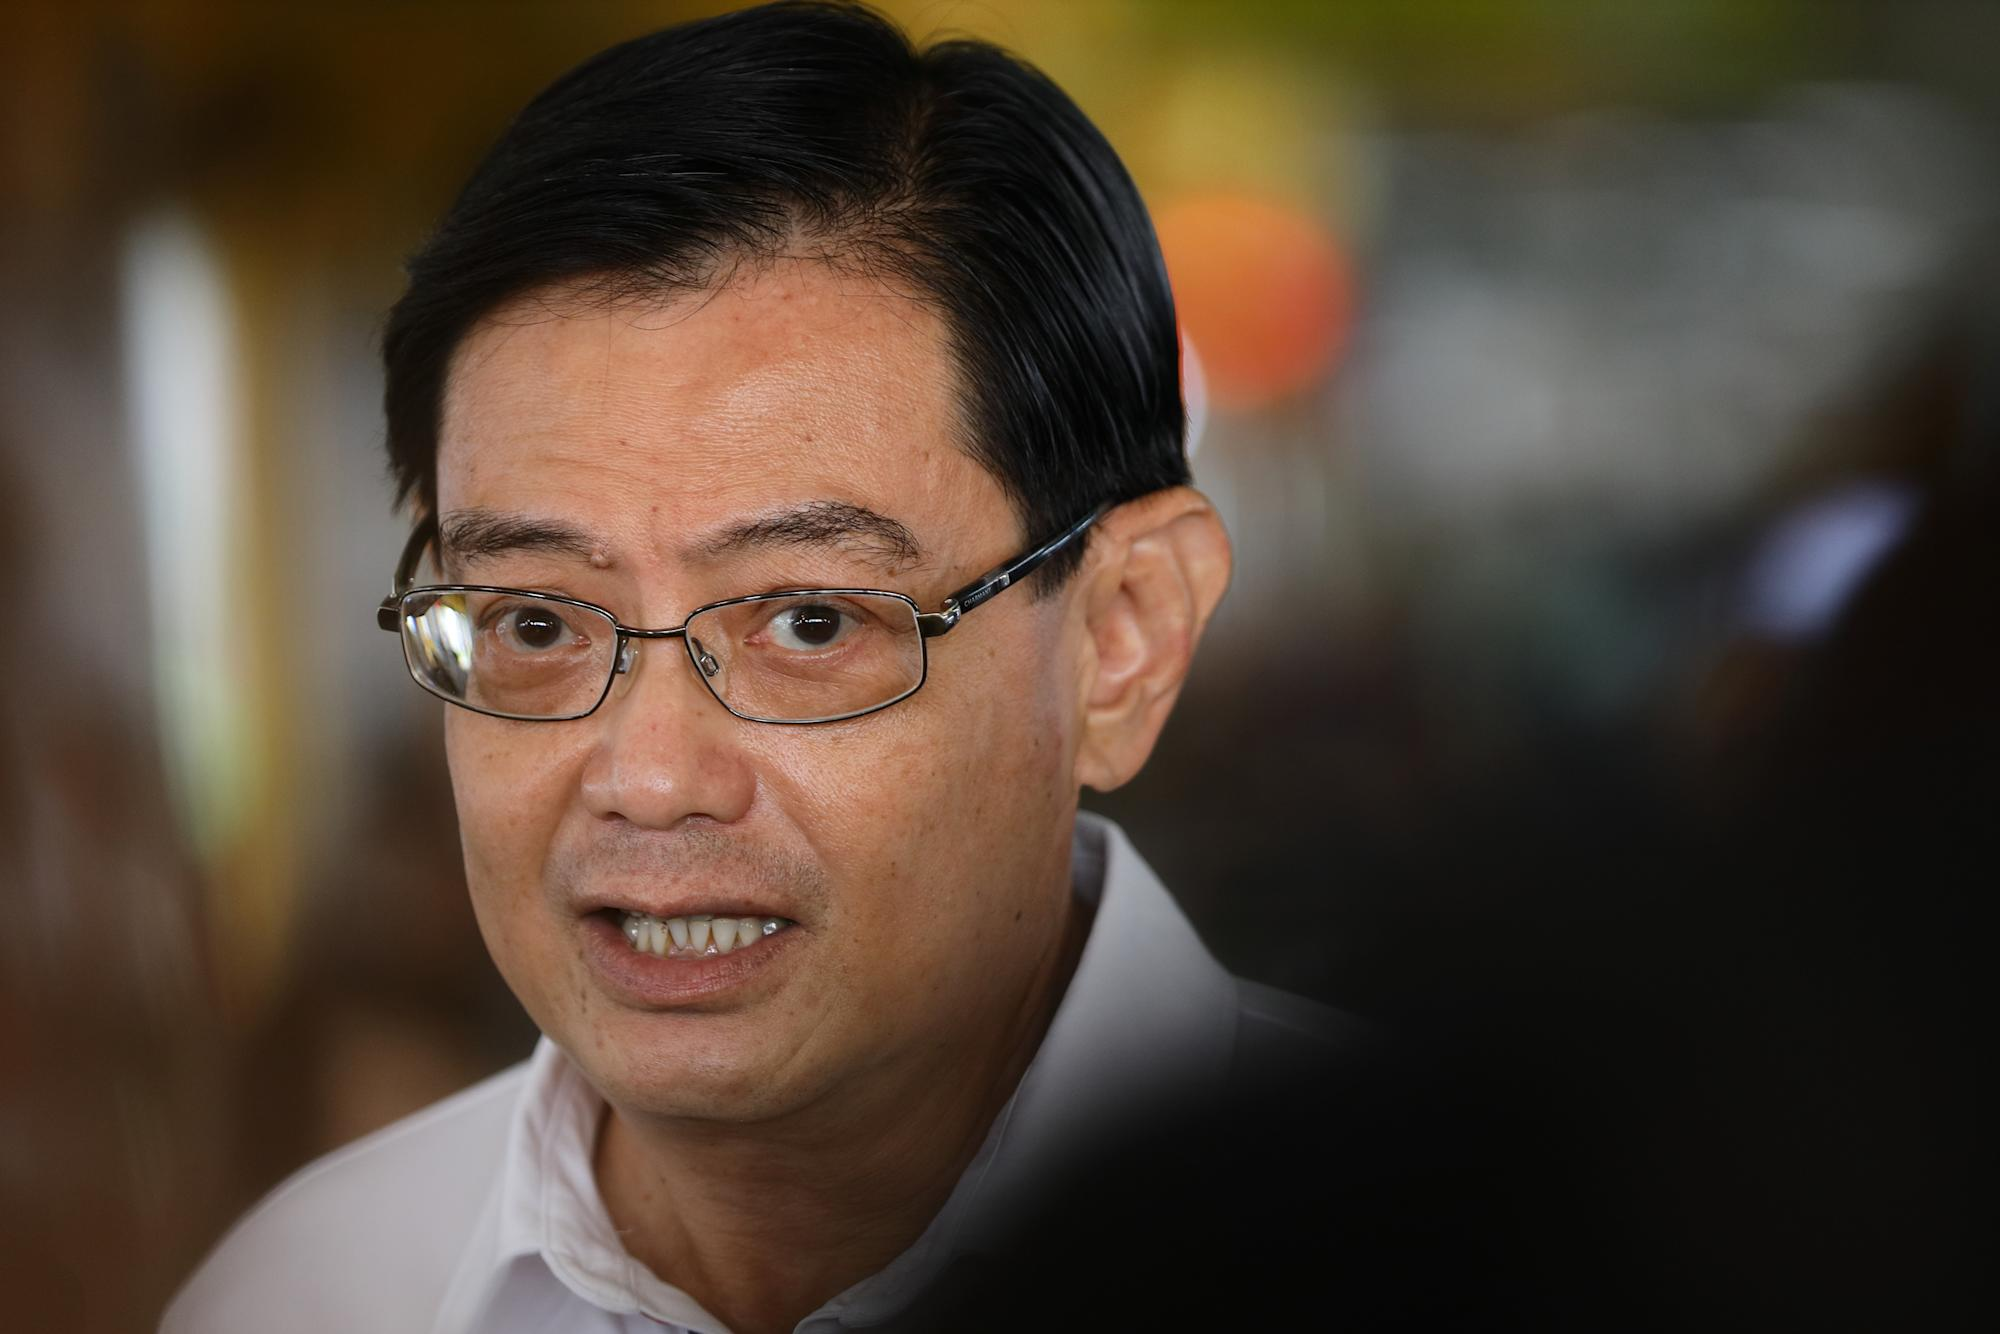 WATCH: Singapore's Budget 2021 by Heng Swee Keat